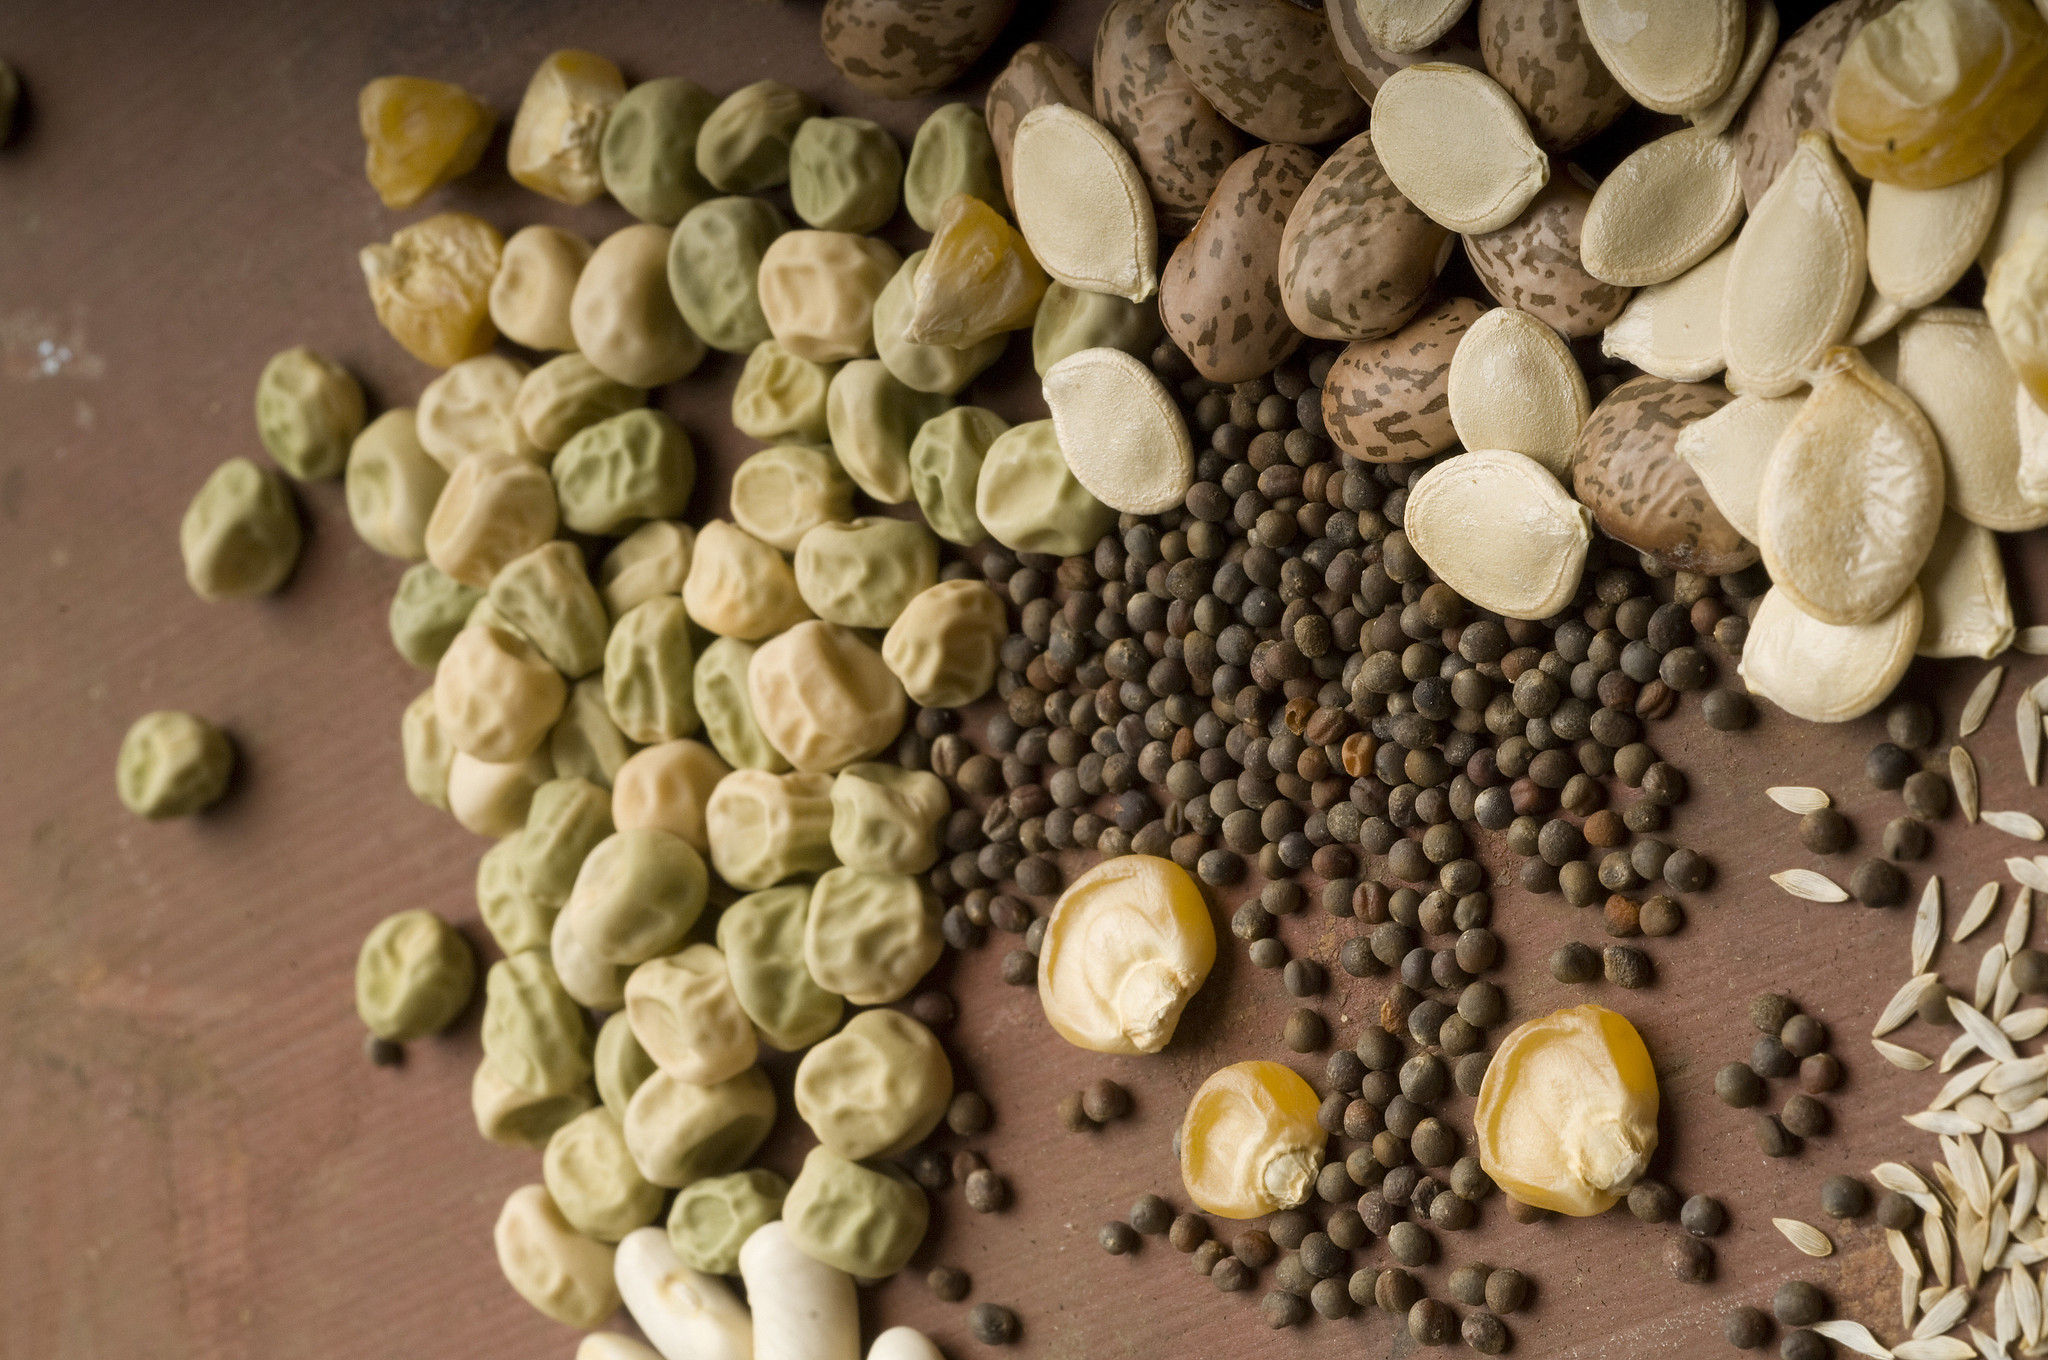 Seize some seeds from the garden for planting next year